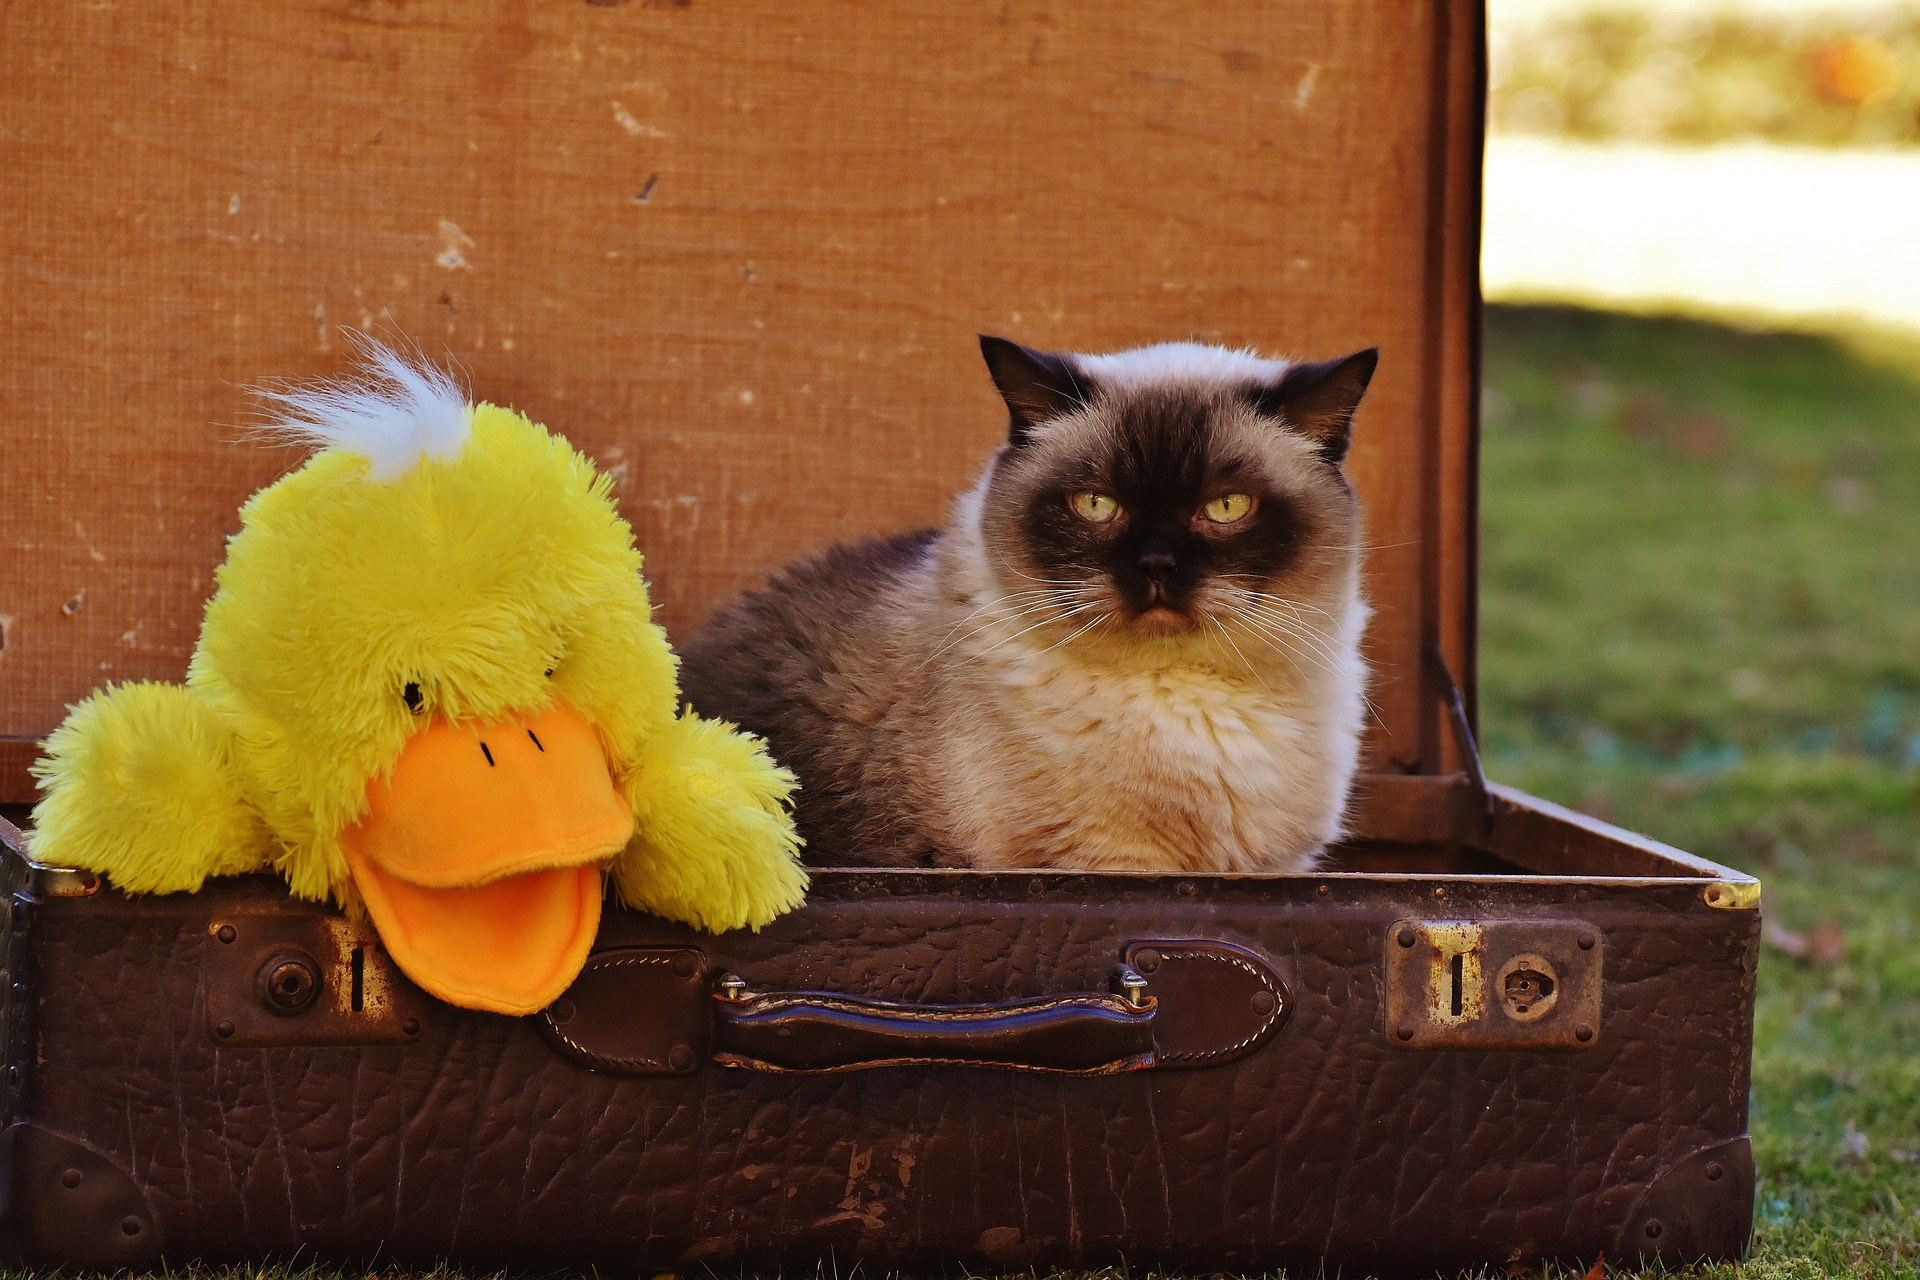 Cat sits in a travel trunk with a stuffed duck